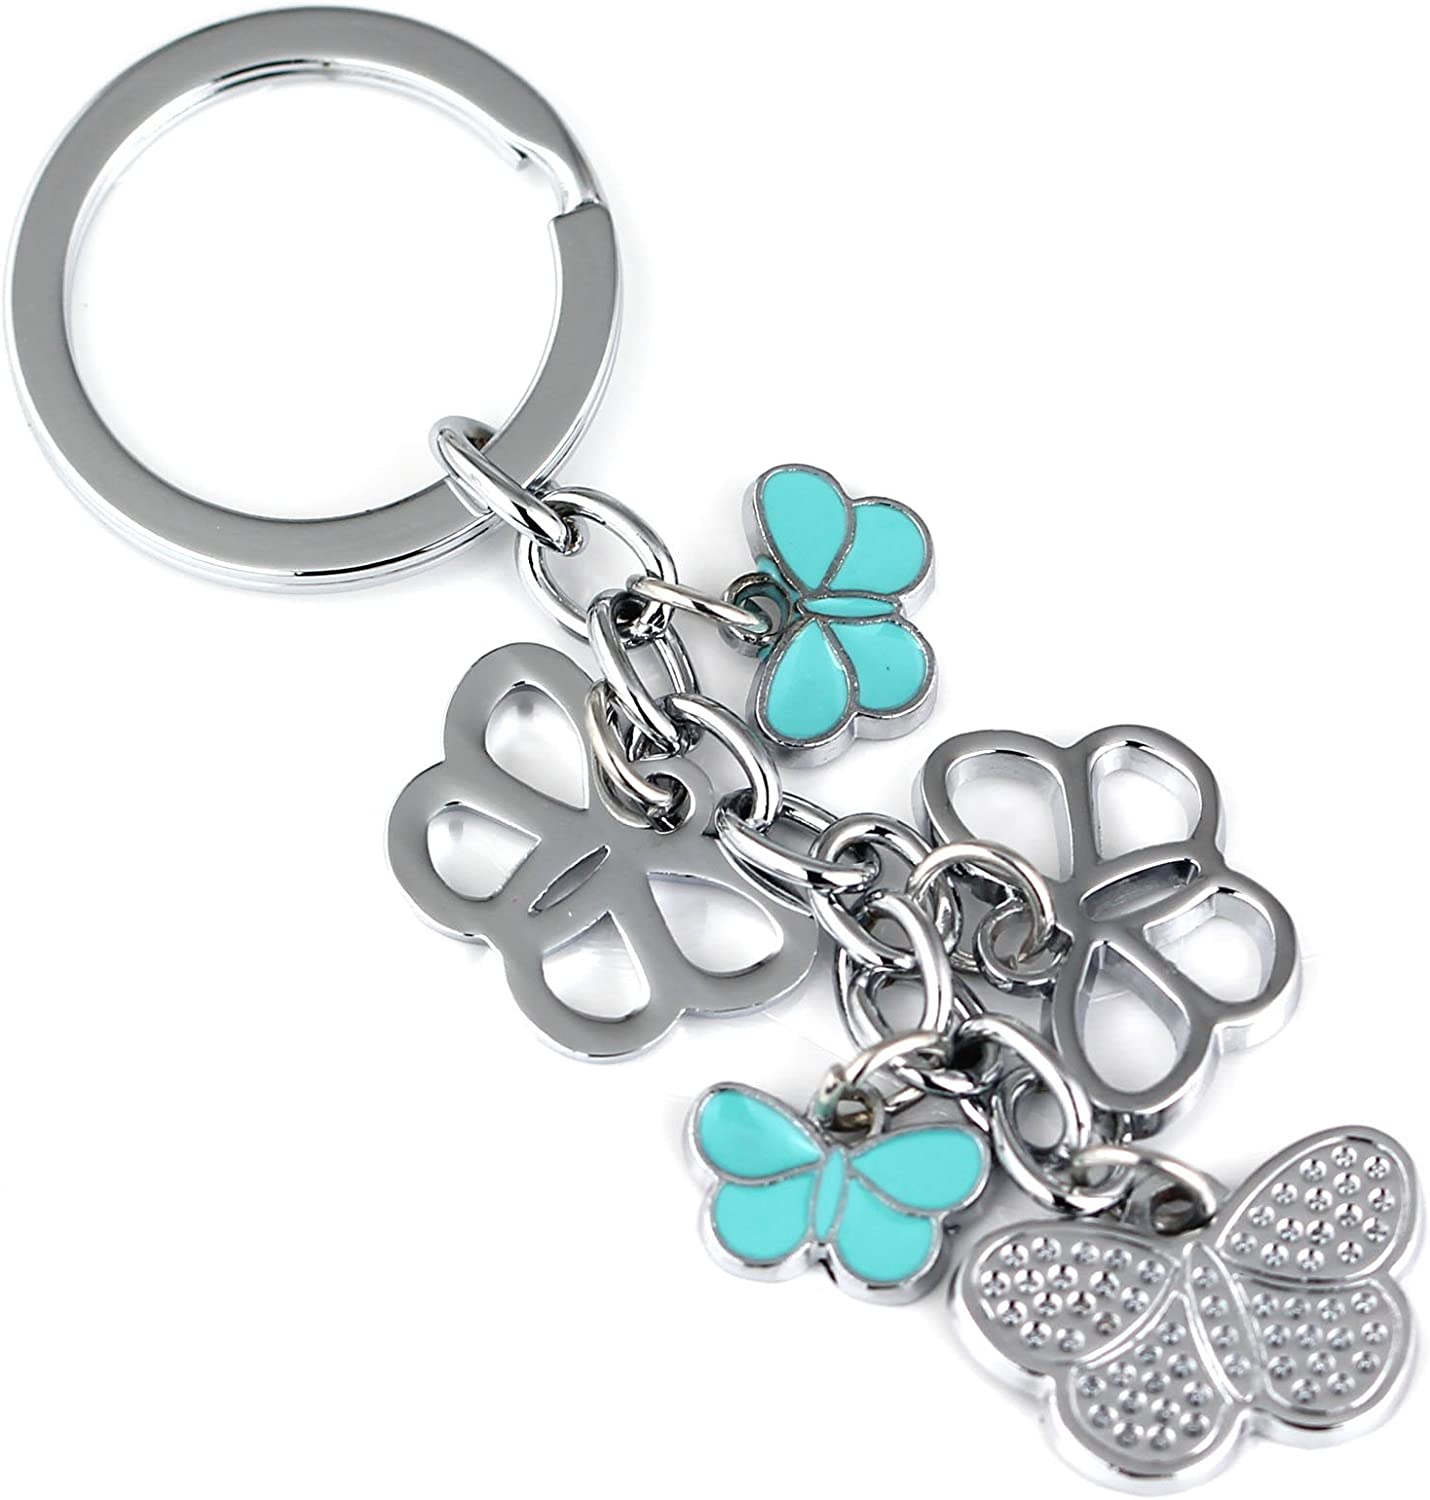 Red Maycom Butterfly Keychain Fashion Accessories Insect Key Chain Ring Keyring Keyfob Keyholder